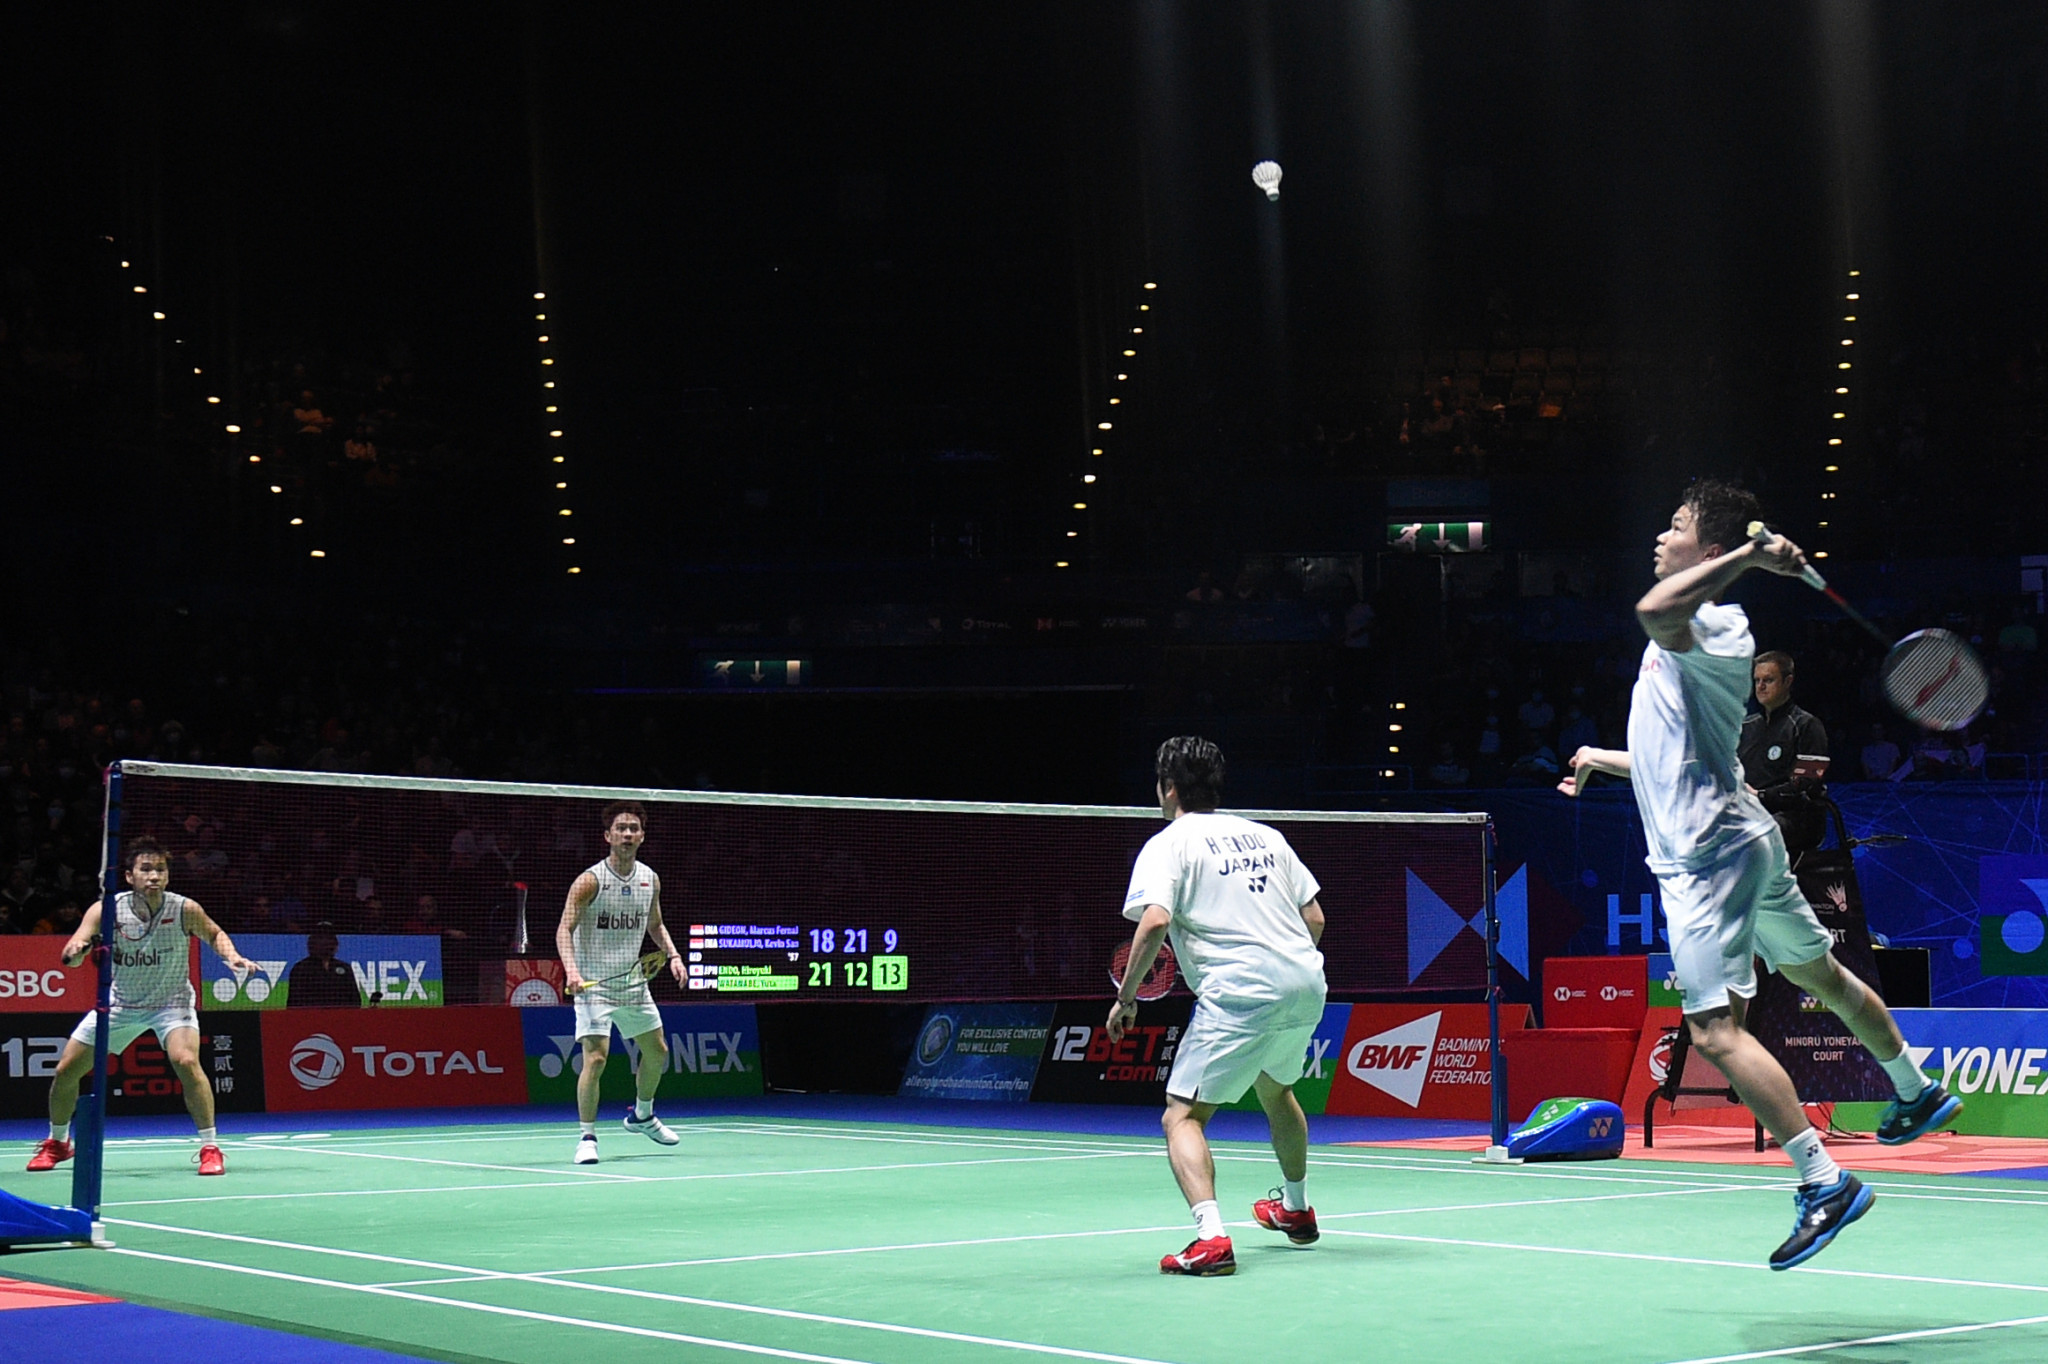 Badminton's season was halted after the All England Championships back in March ©Getty Images